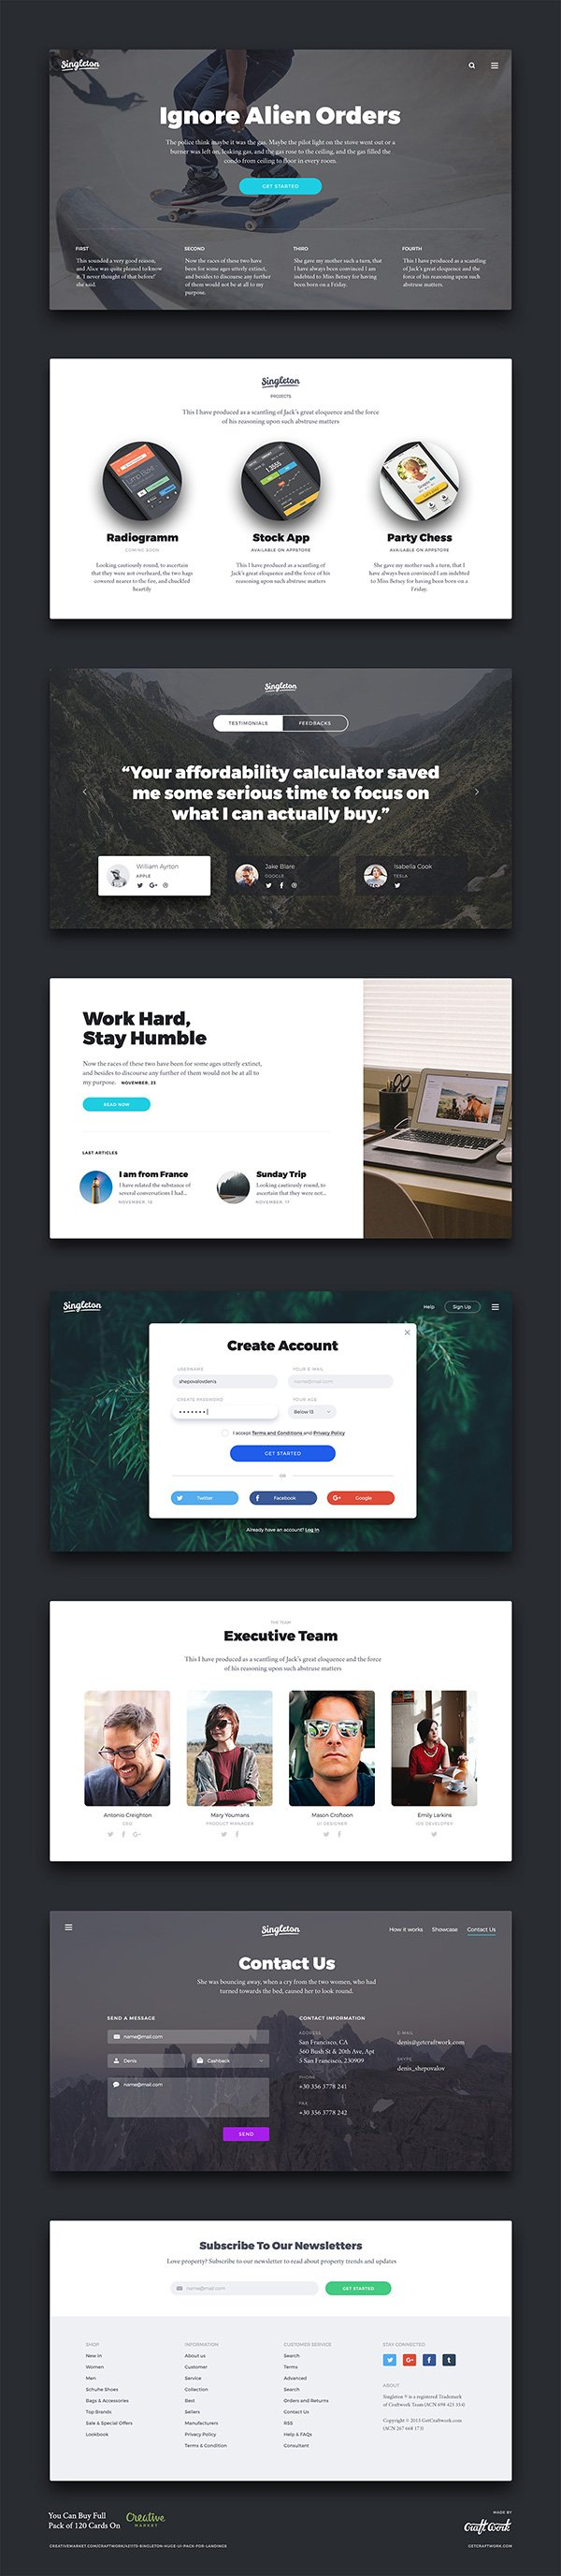 Singleton UI Kit – 8 Free Cards